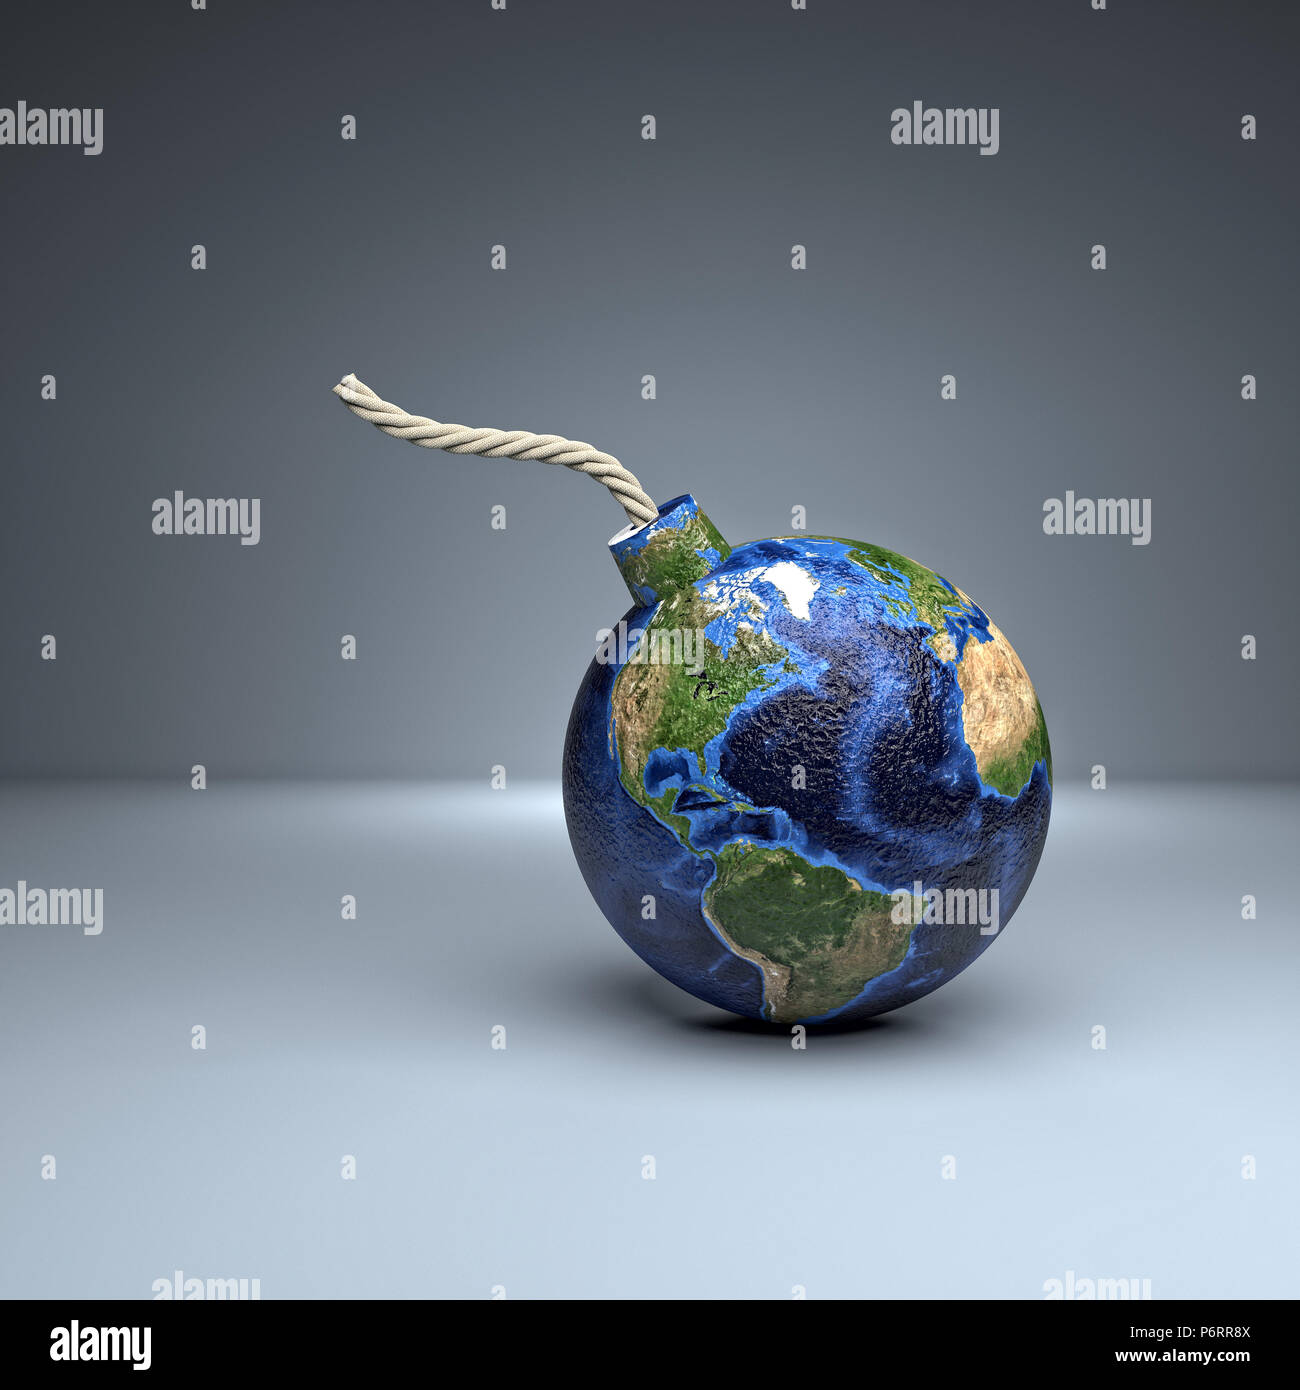 world bomb american side 3d rendering image - Stock Image